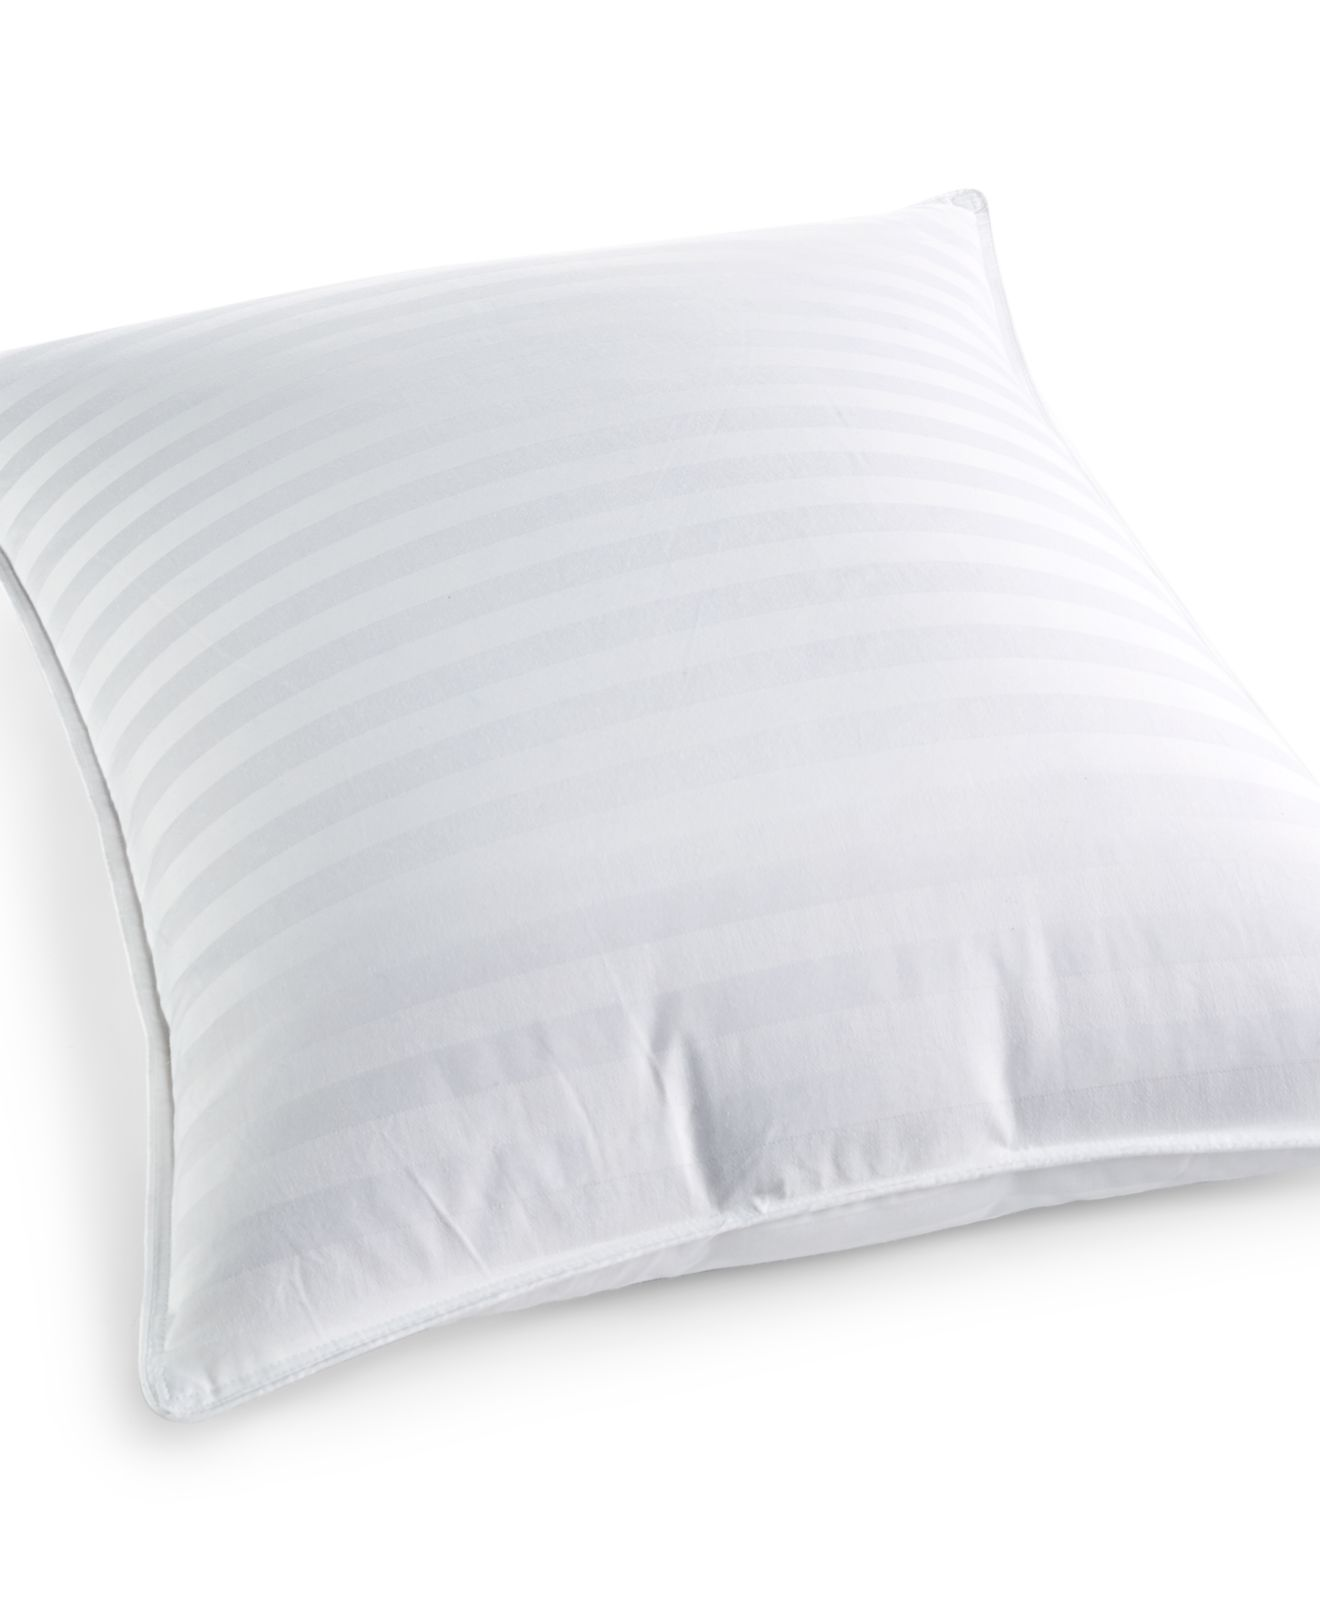 home design down pillow, hypoallergenic ultraclean down, only at